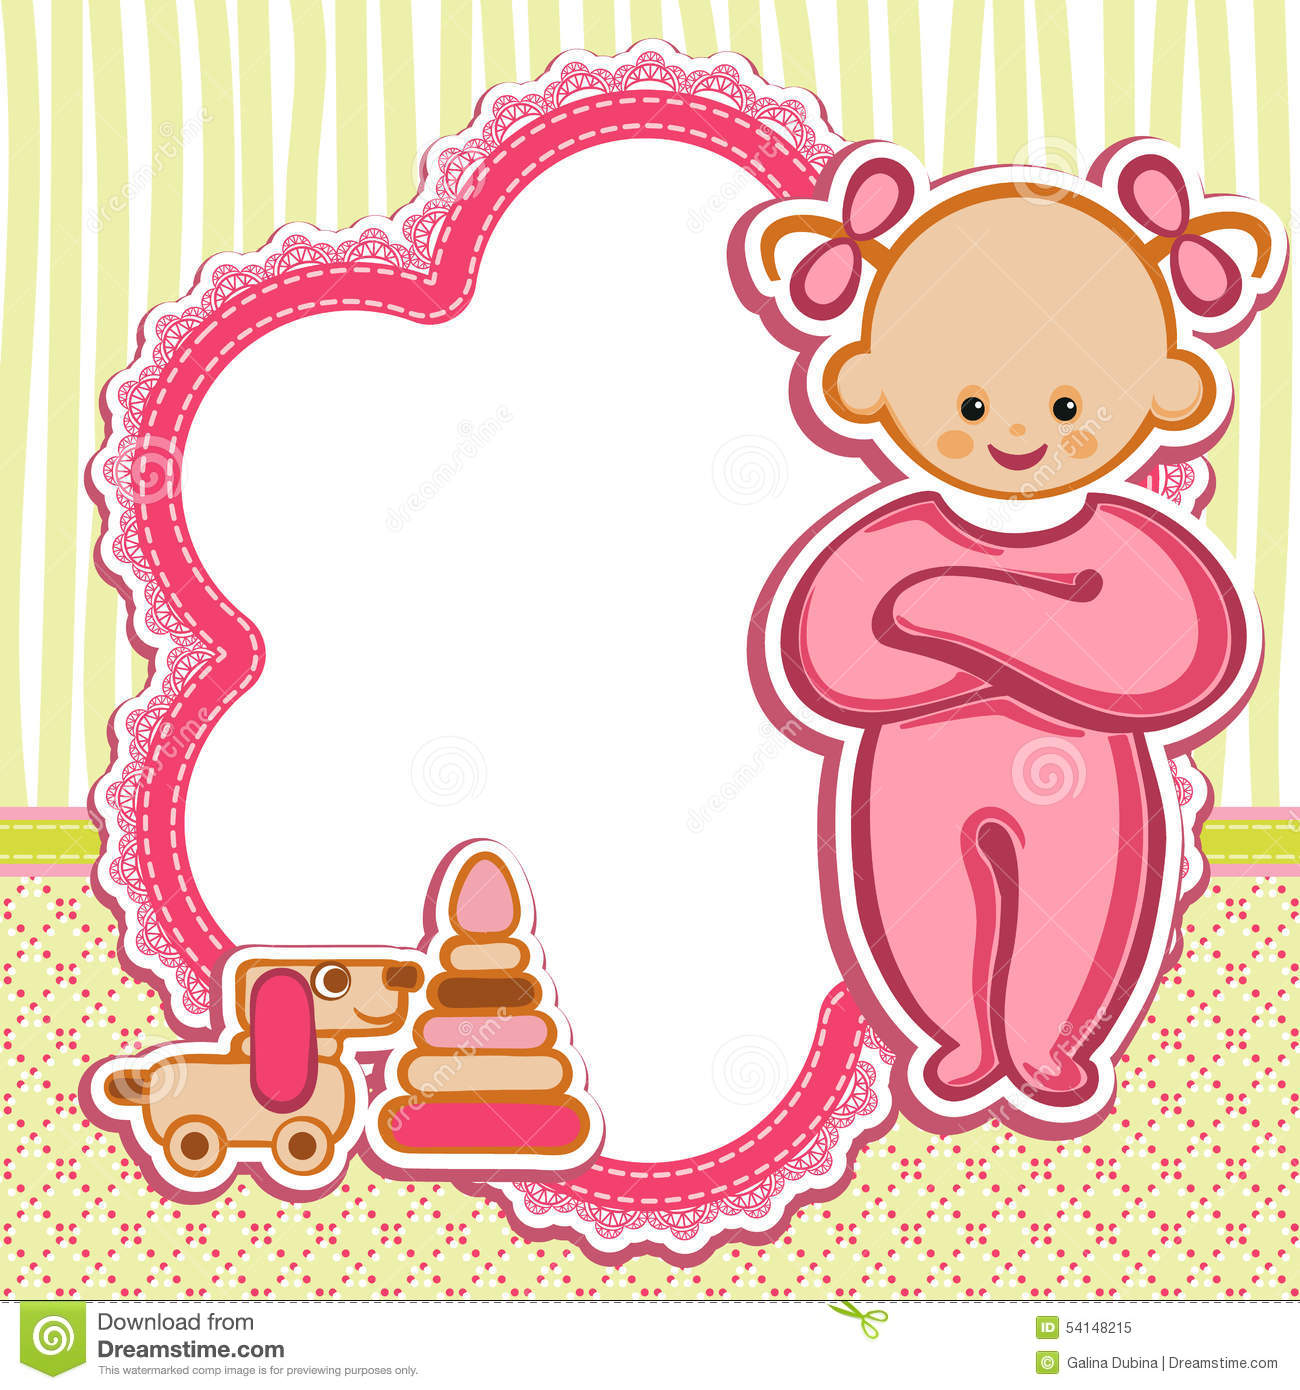 Baby girl clipart simple png black and white Card For Baby Girl Stock Vector - Image: 54148215 png black and white